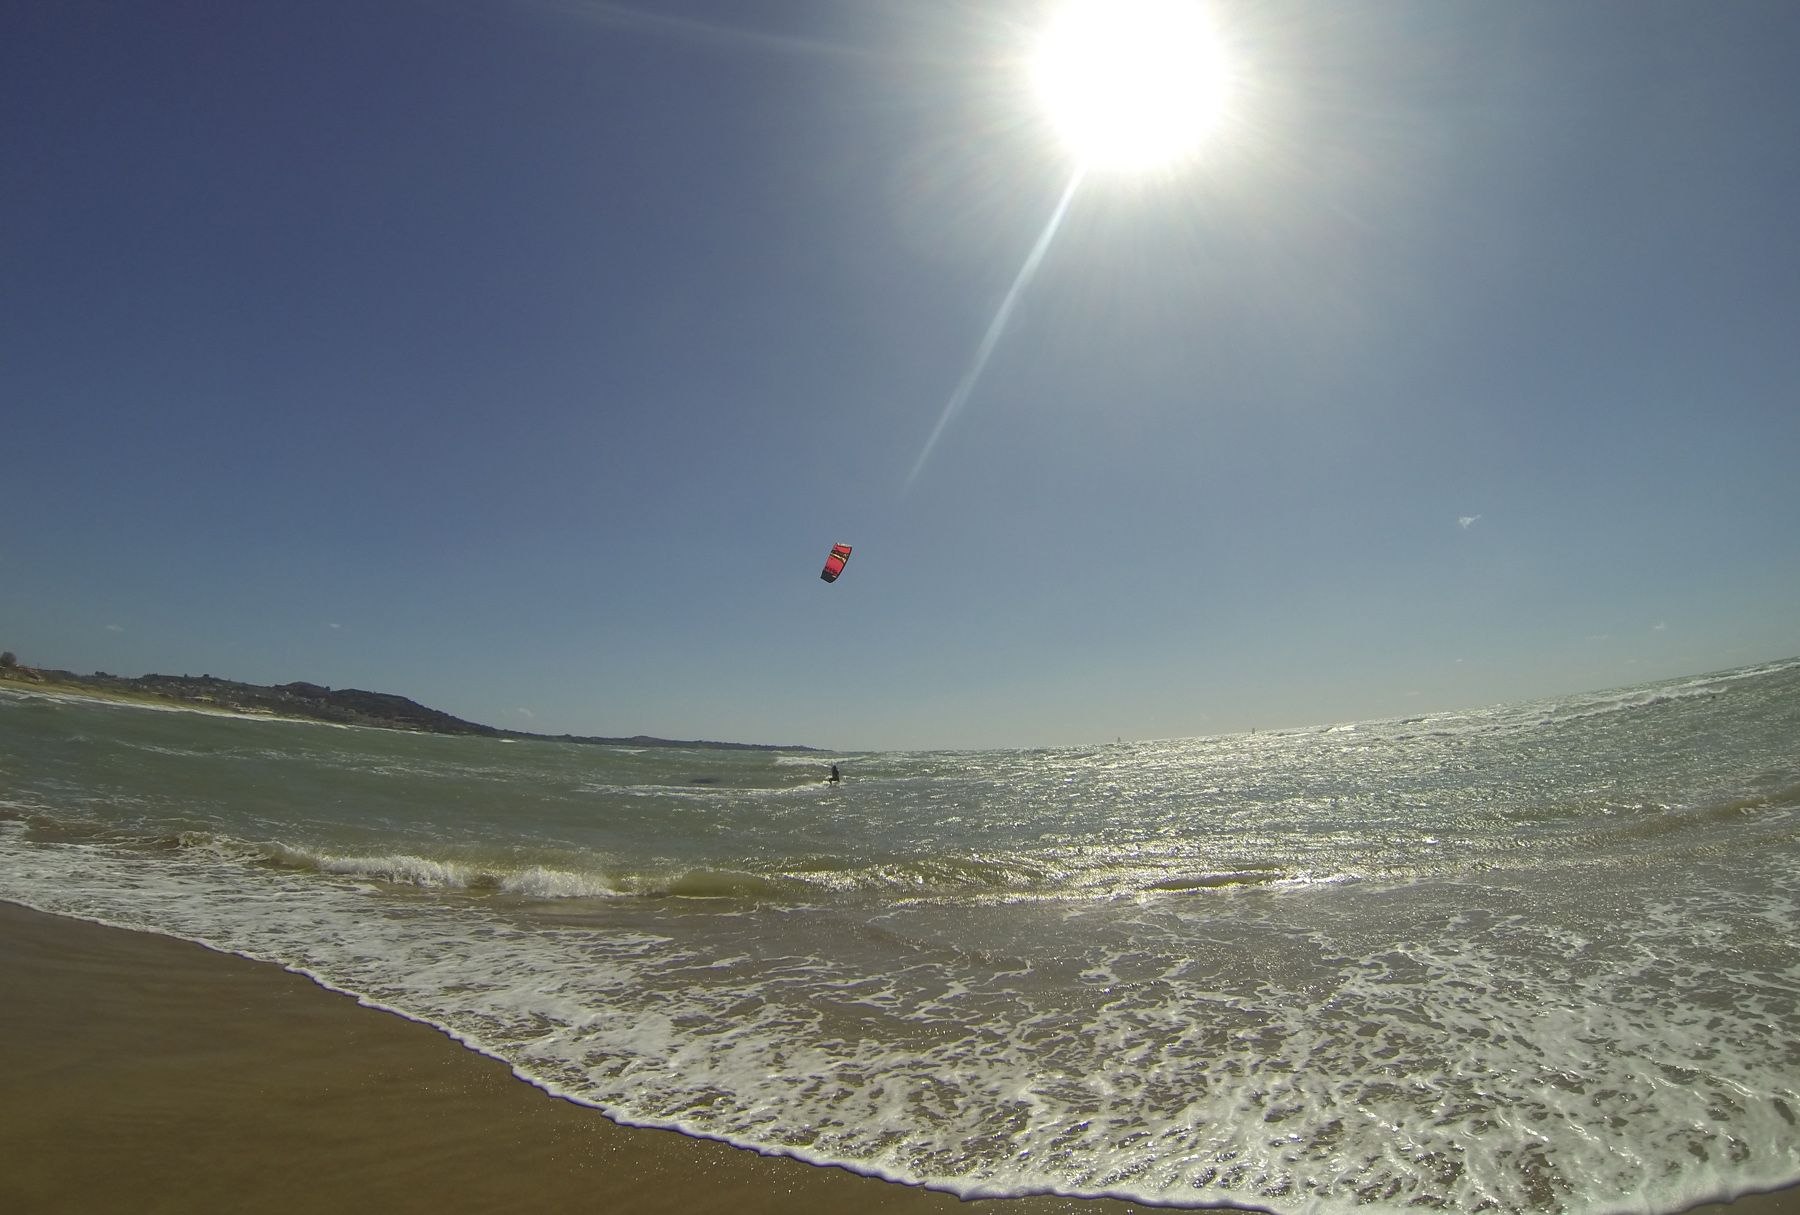 Most popular beach for kite surfing is Agios Ilias, during summer months the wind comes from North-west, West direction and the average is 17 – 24 knots. During the winter months Agios Ilias have strong South-west, West winds over 30 knots  and lot of wave ideal for kite surfing.